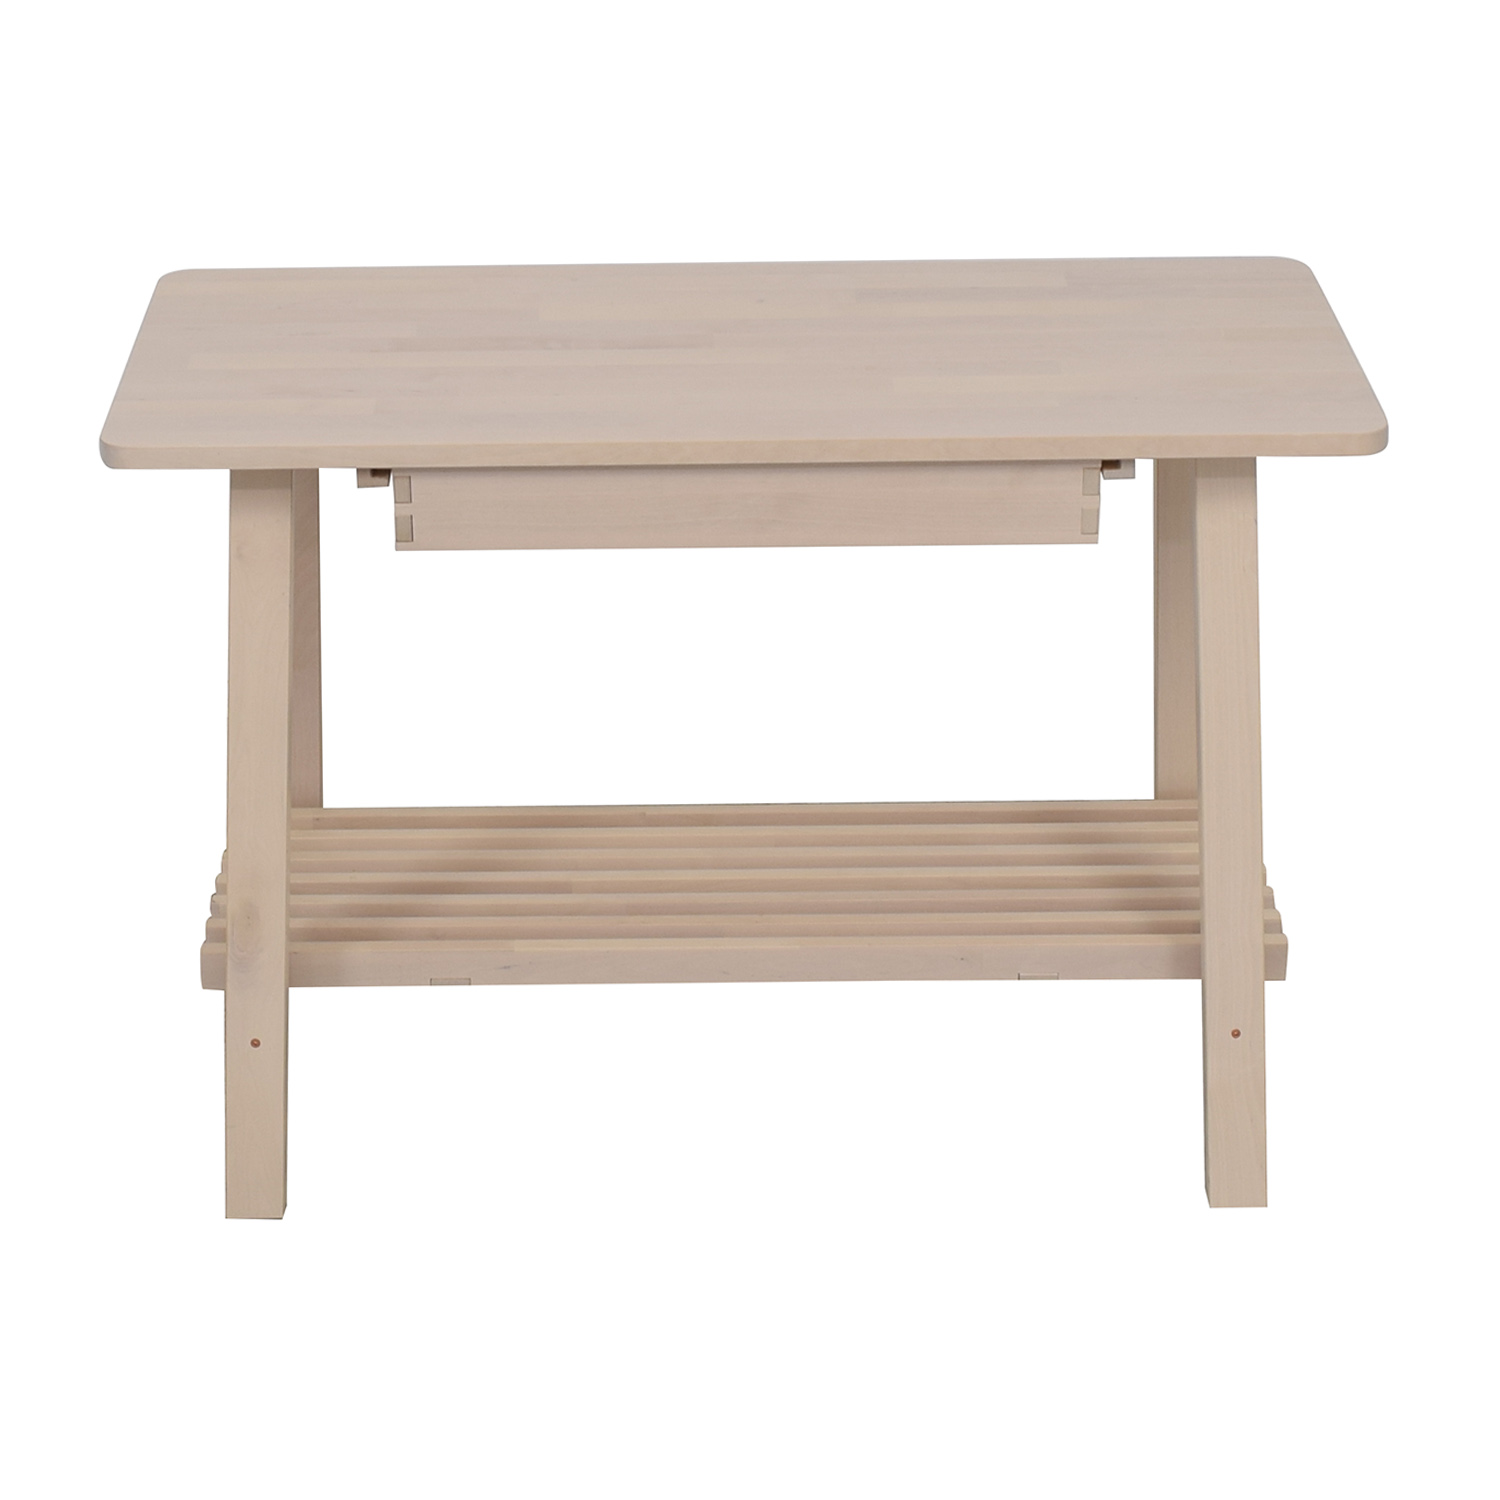 IKEA Norraker Natural Kitchen Island / Utility Tables